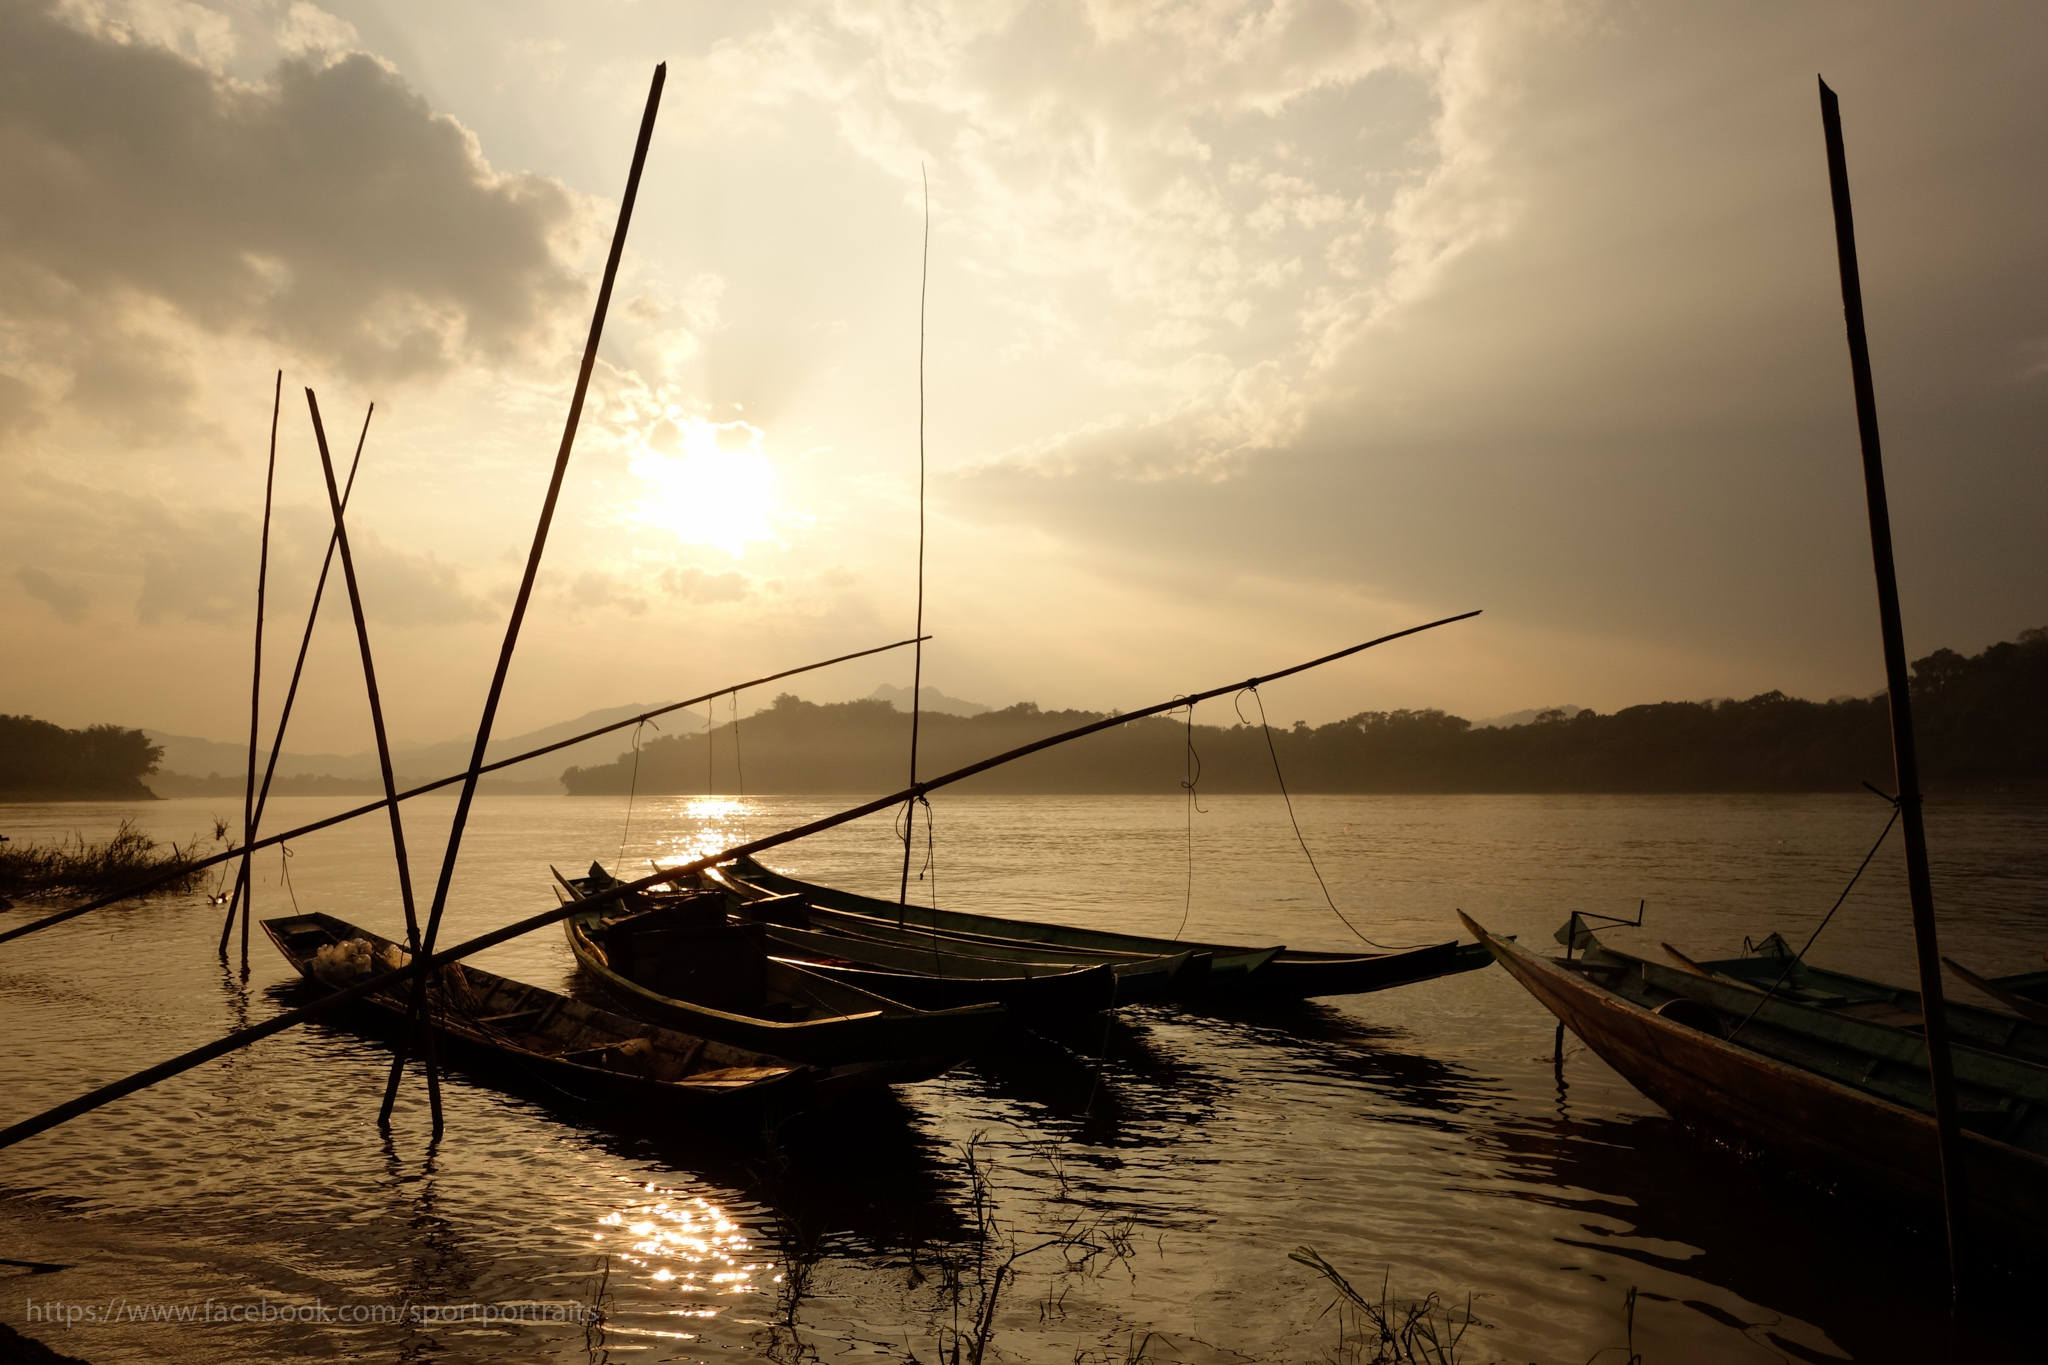 Mekong in Thailand